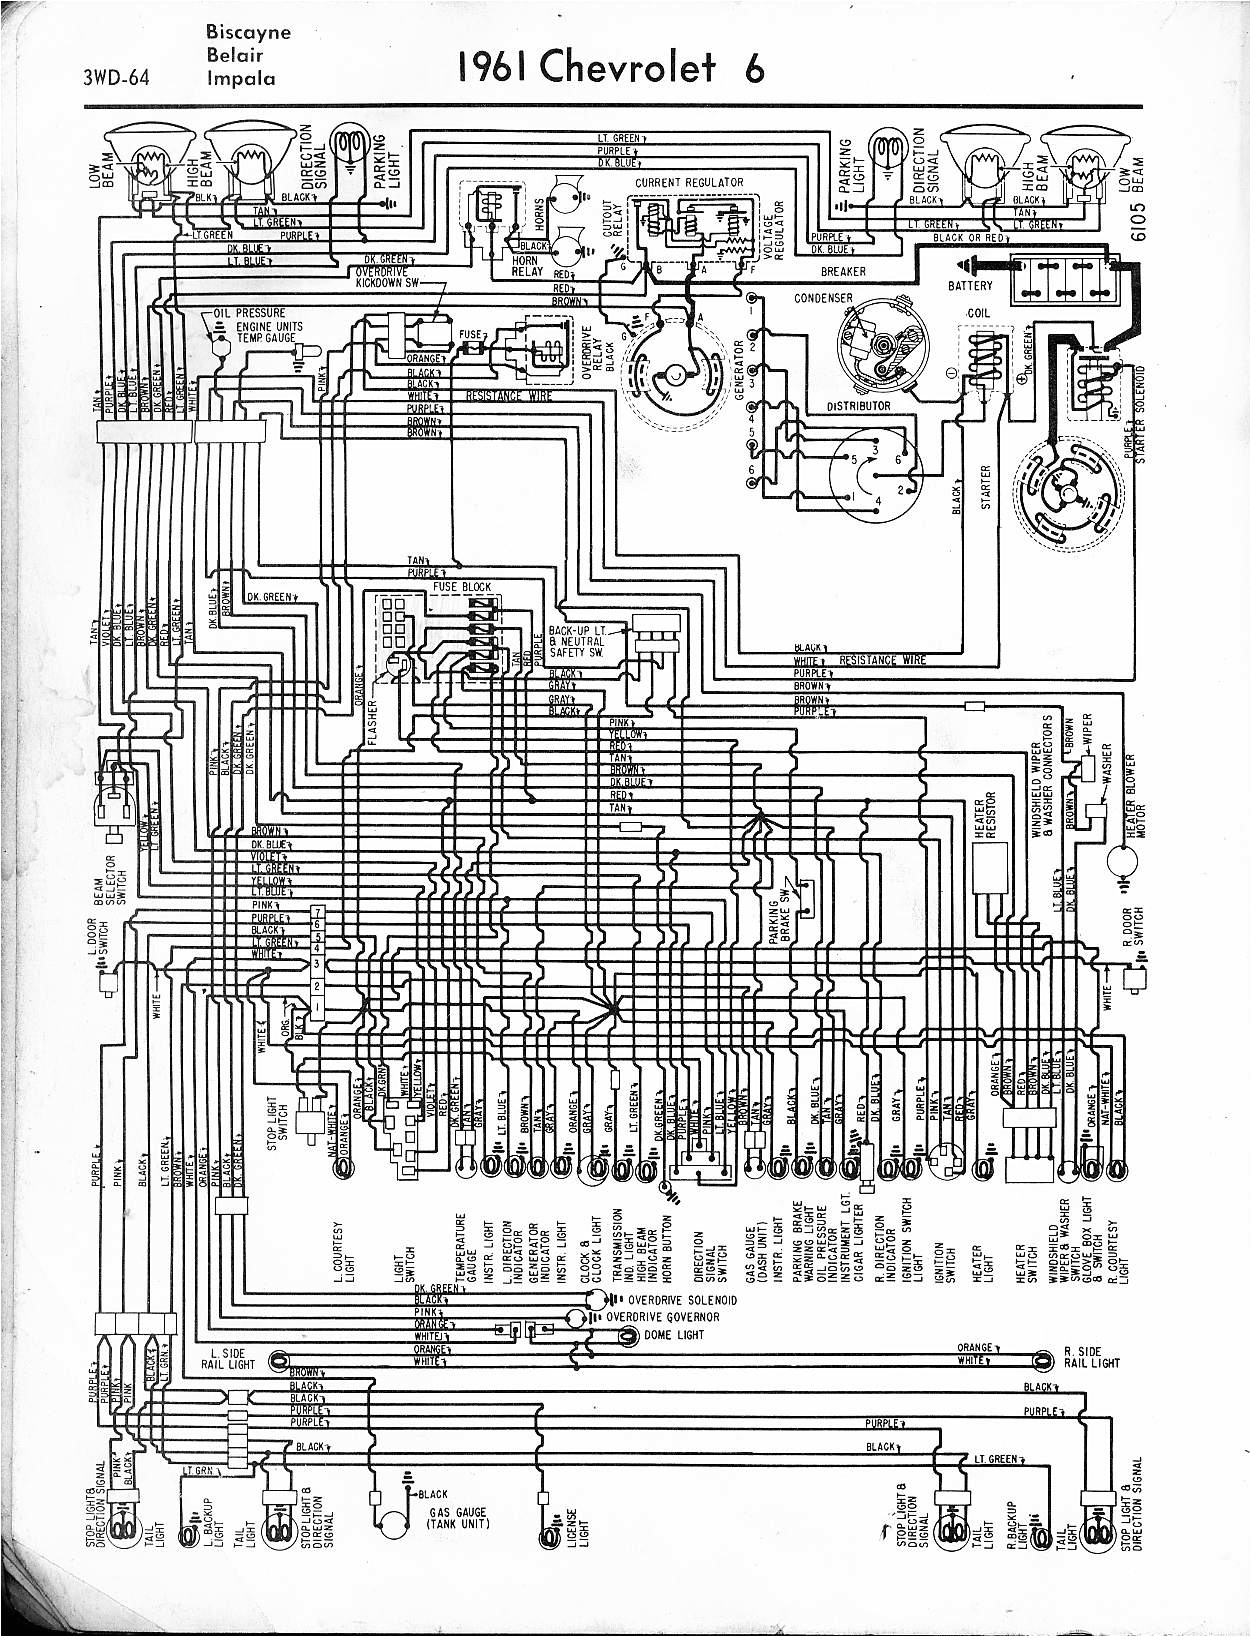 57 65 chevy wiring diagrams 1960 impala wiper motor wiring diagram 1960 impala wiring diagram